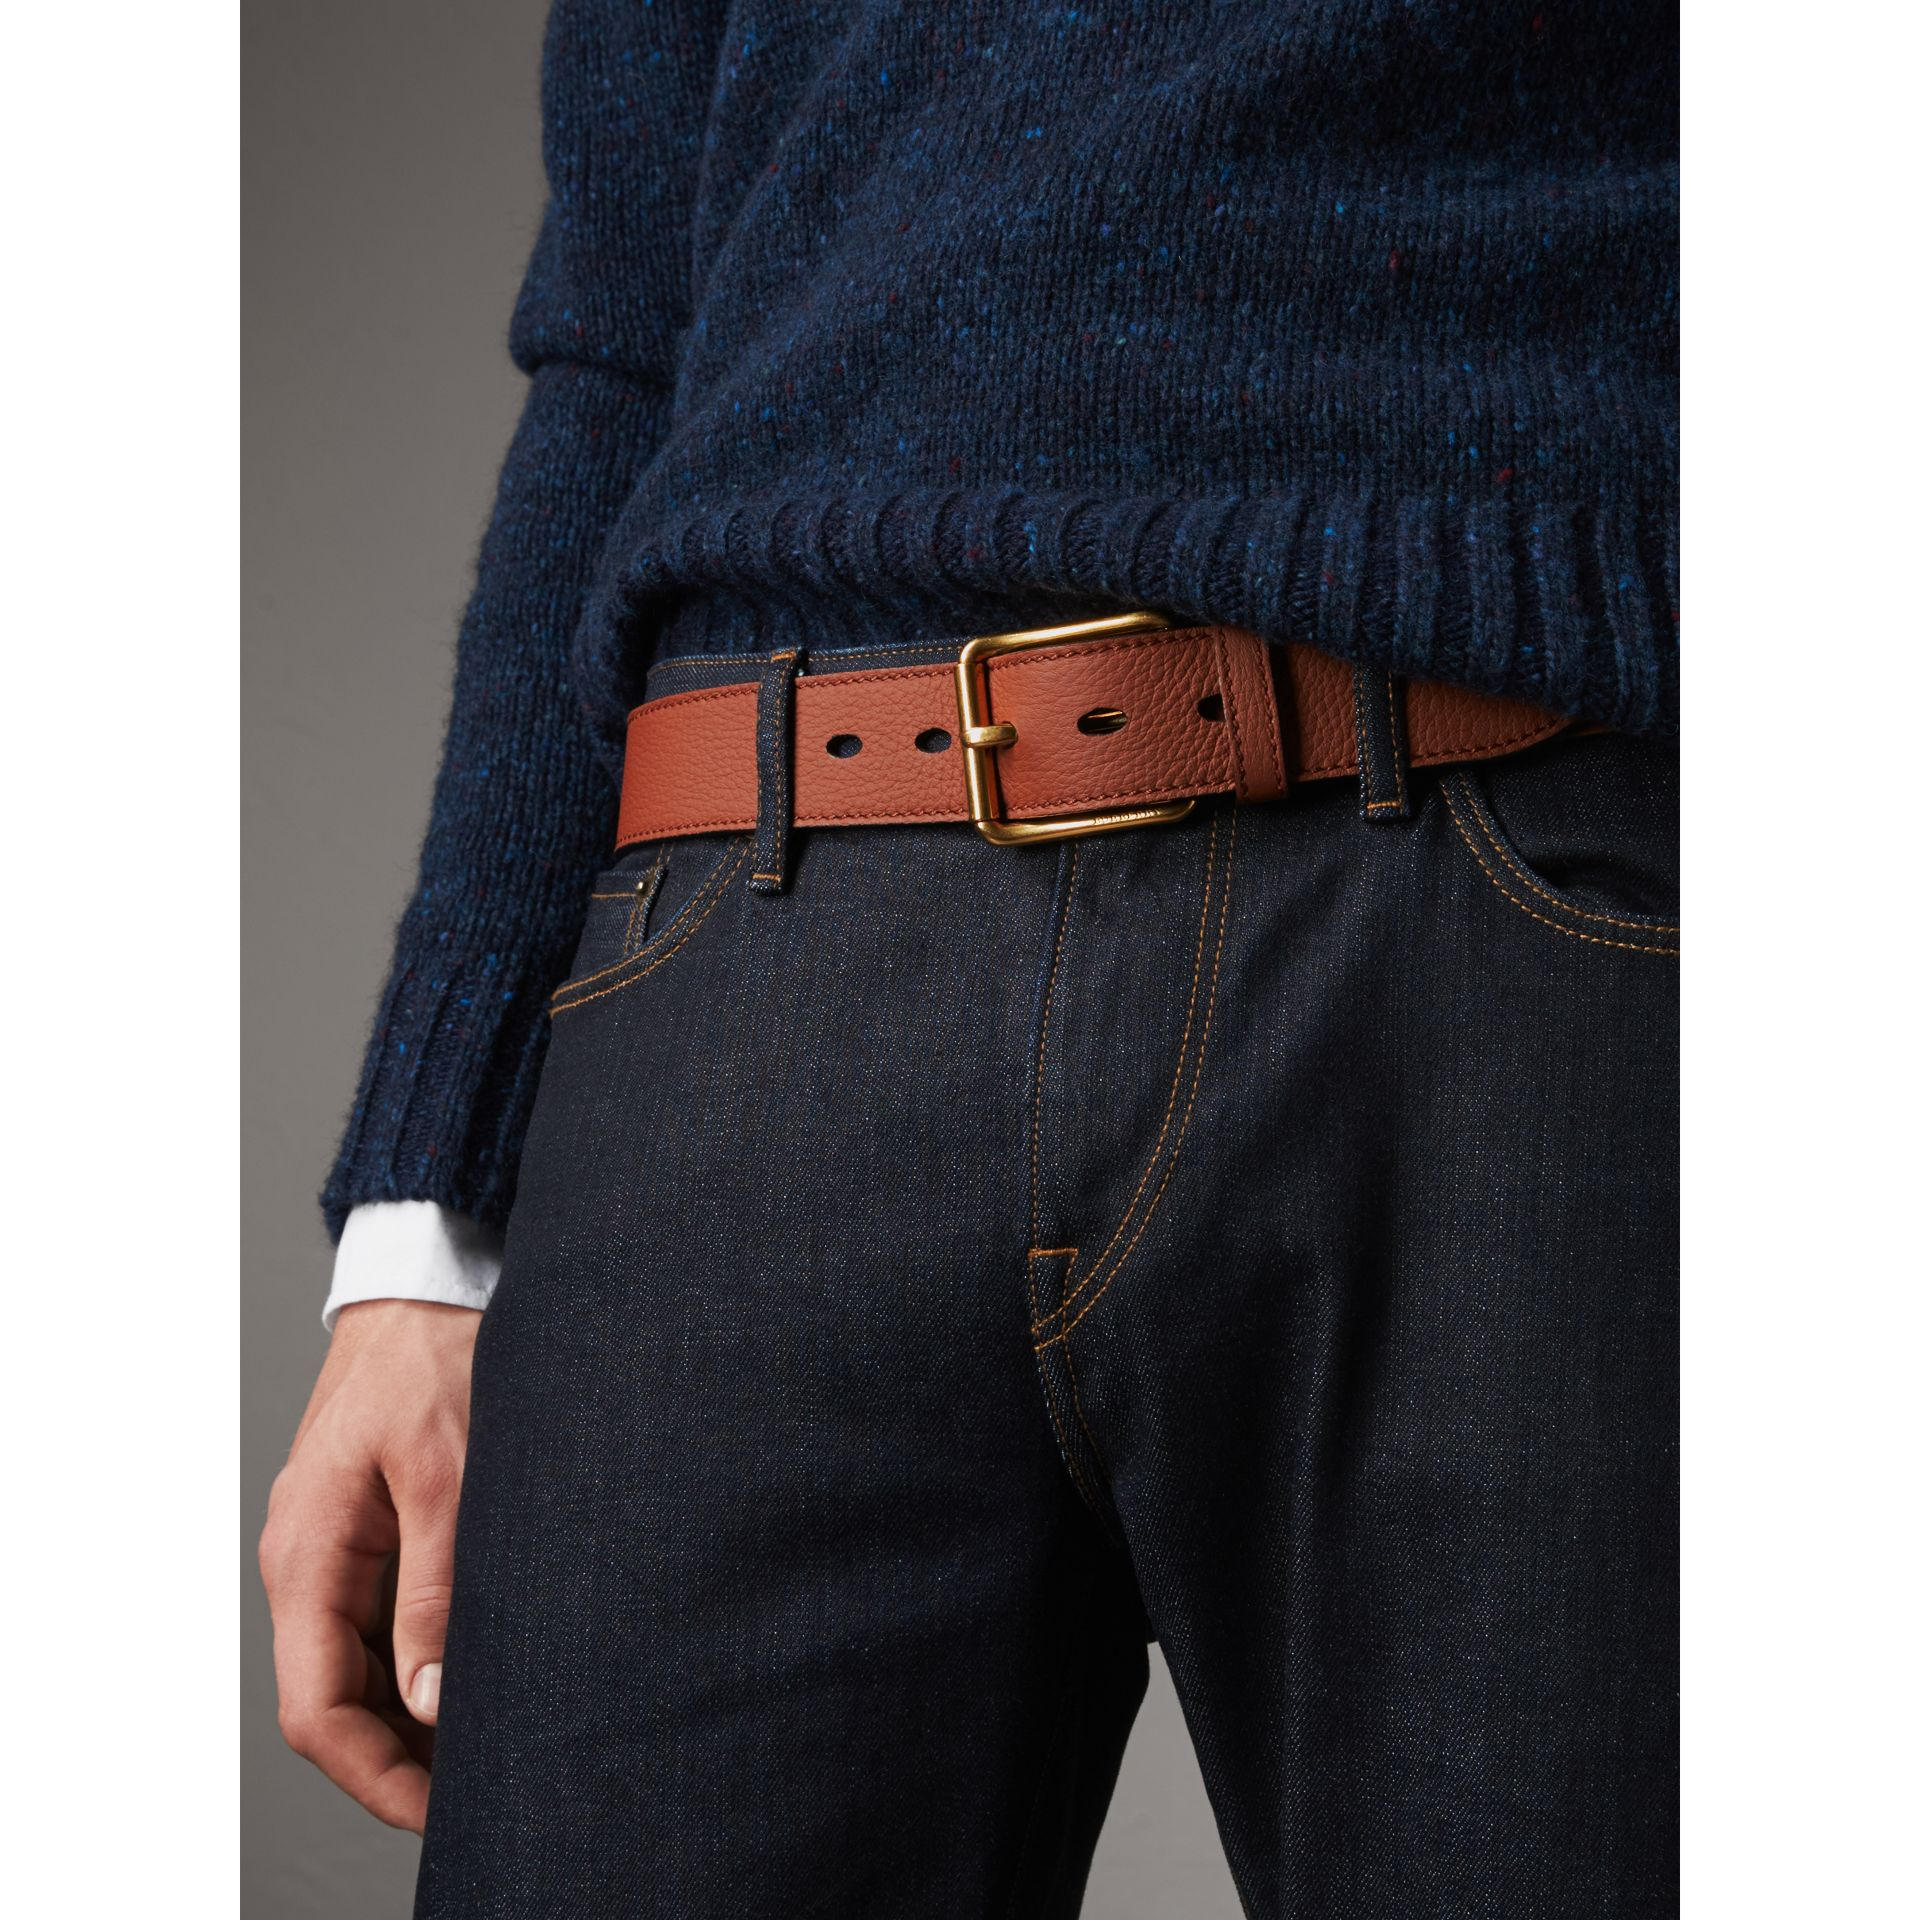 Grainy Leather Belt in Chestnut Brown - Men | Burberry - gallery image 3